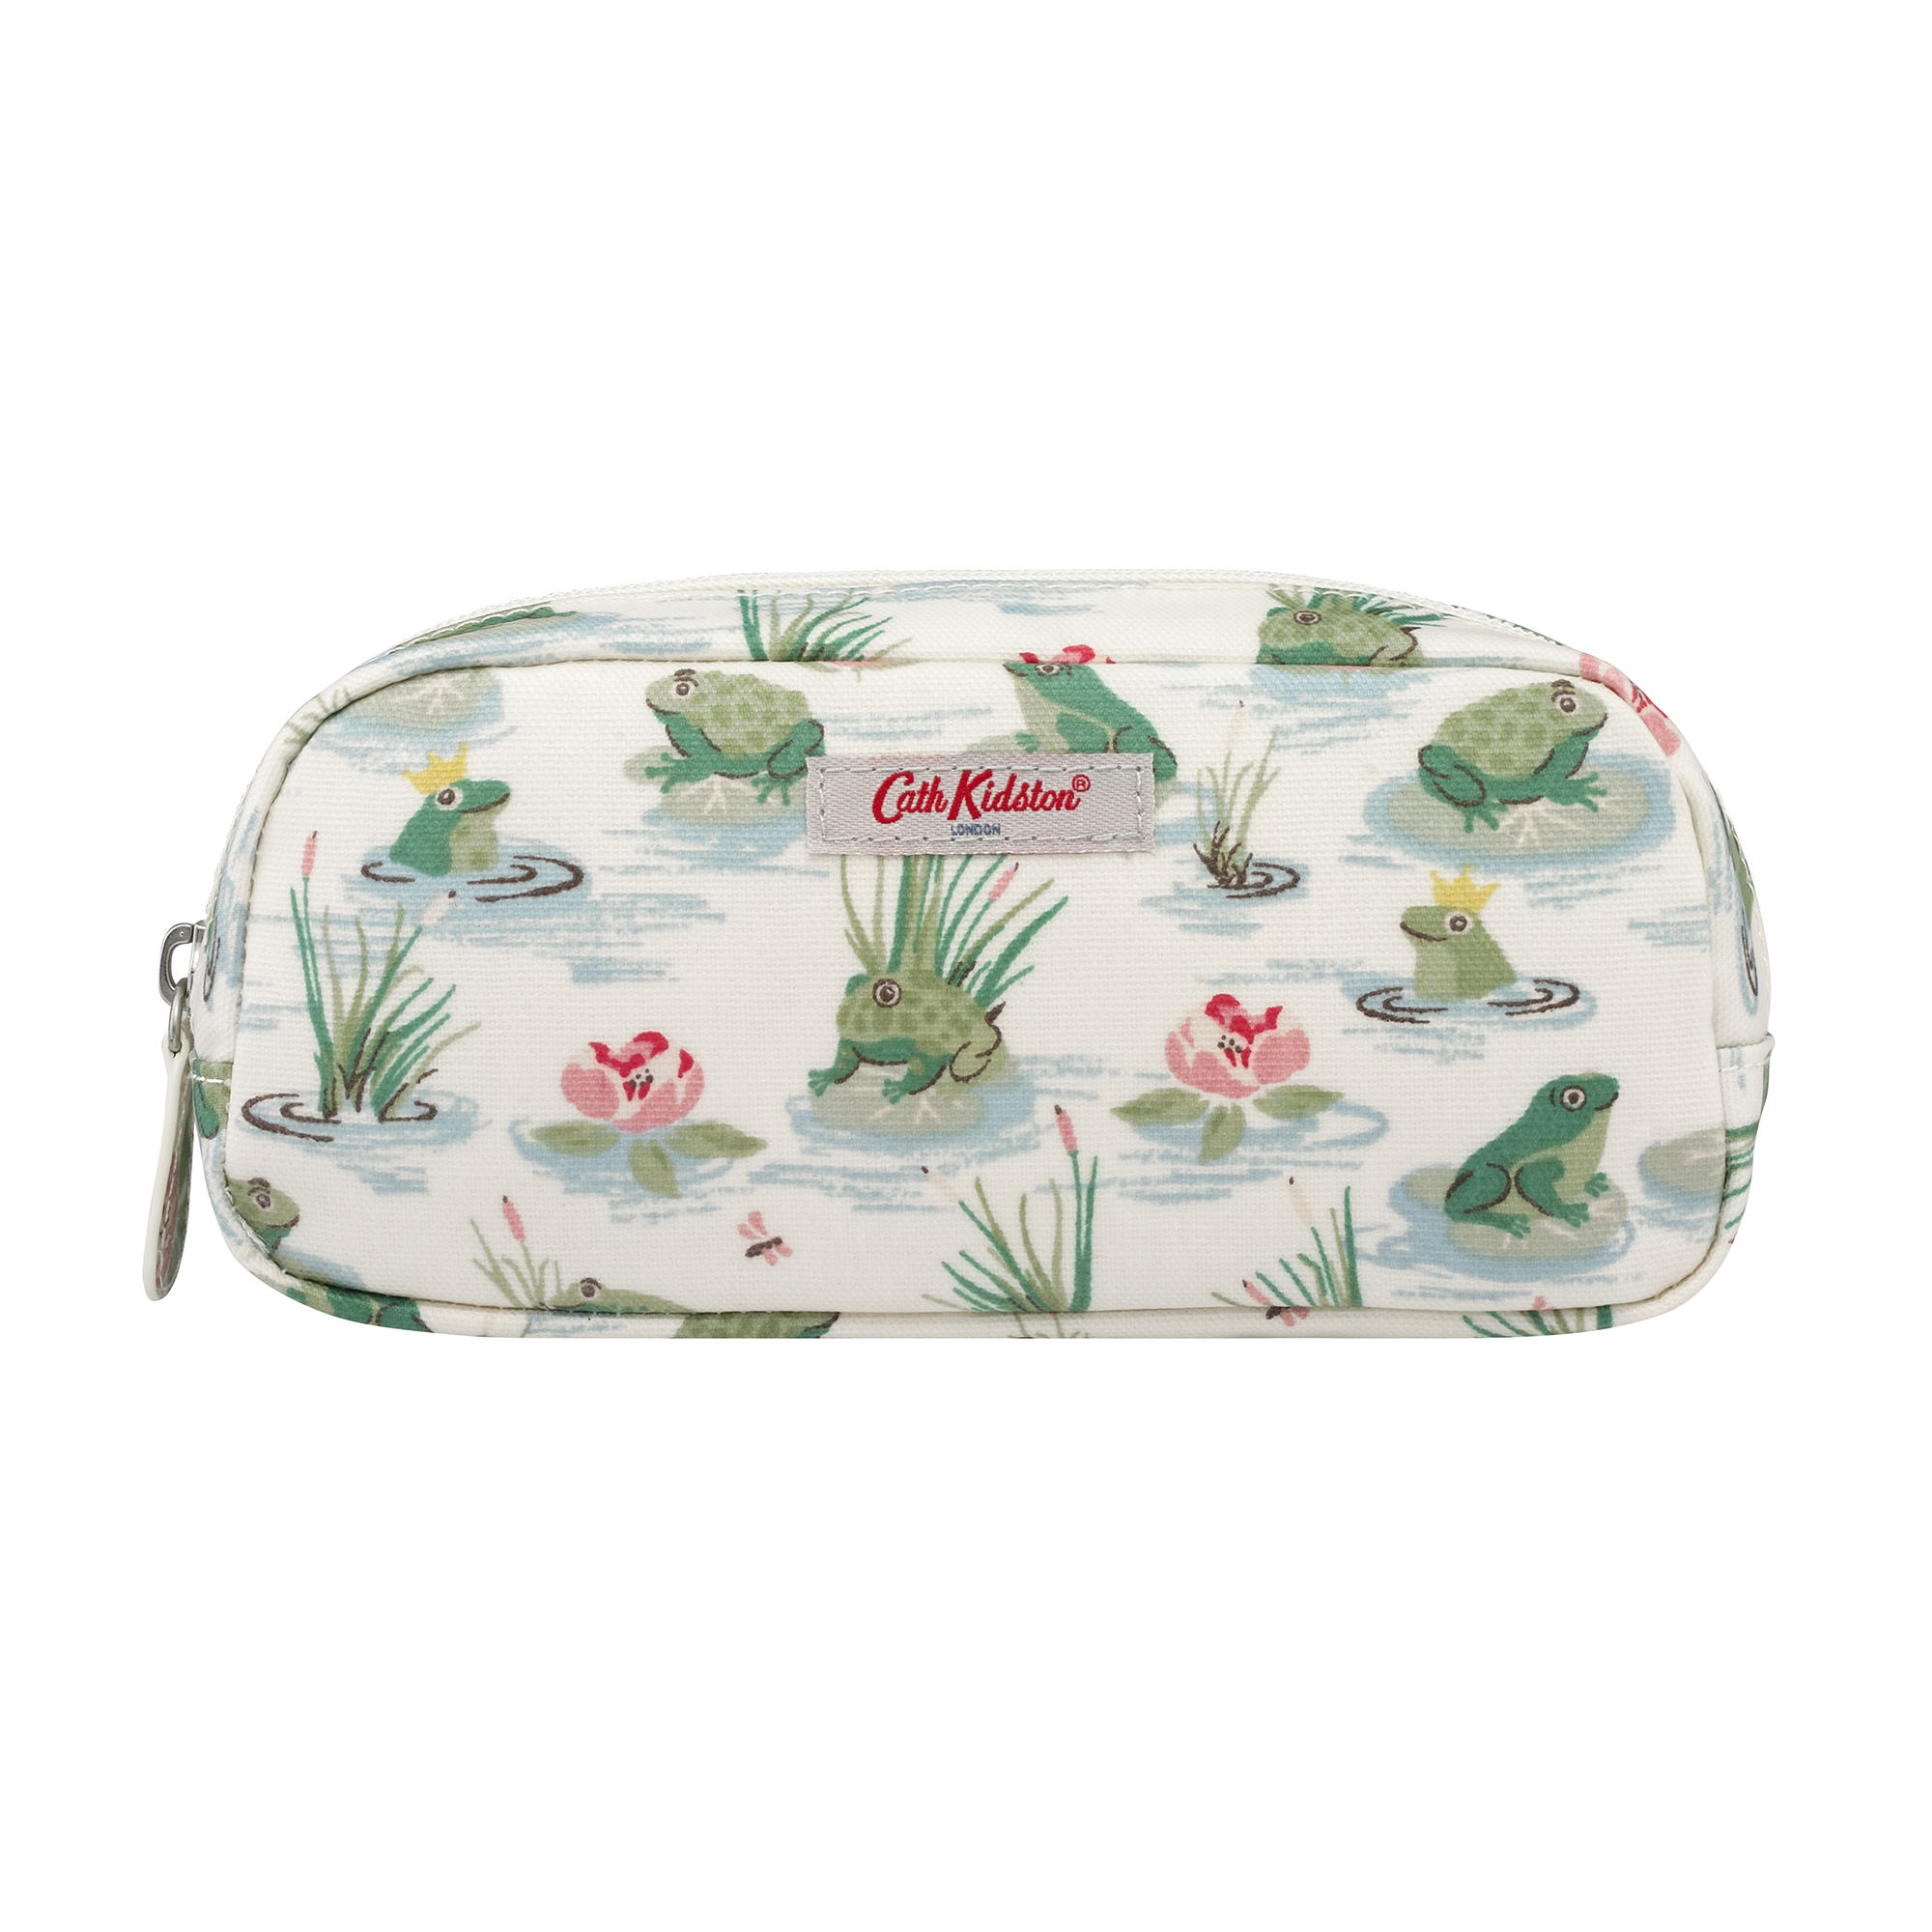 Hộp bút Cath Kidston họa tiết Bathing Frogs (Pencil Case with Pocket Bathing Frogs)